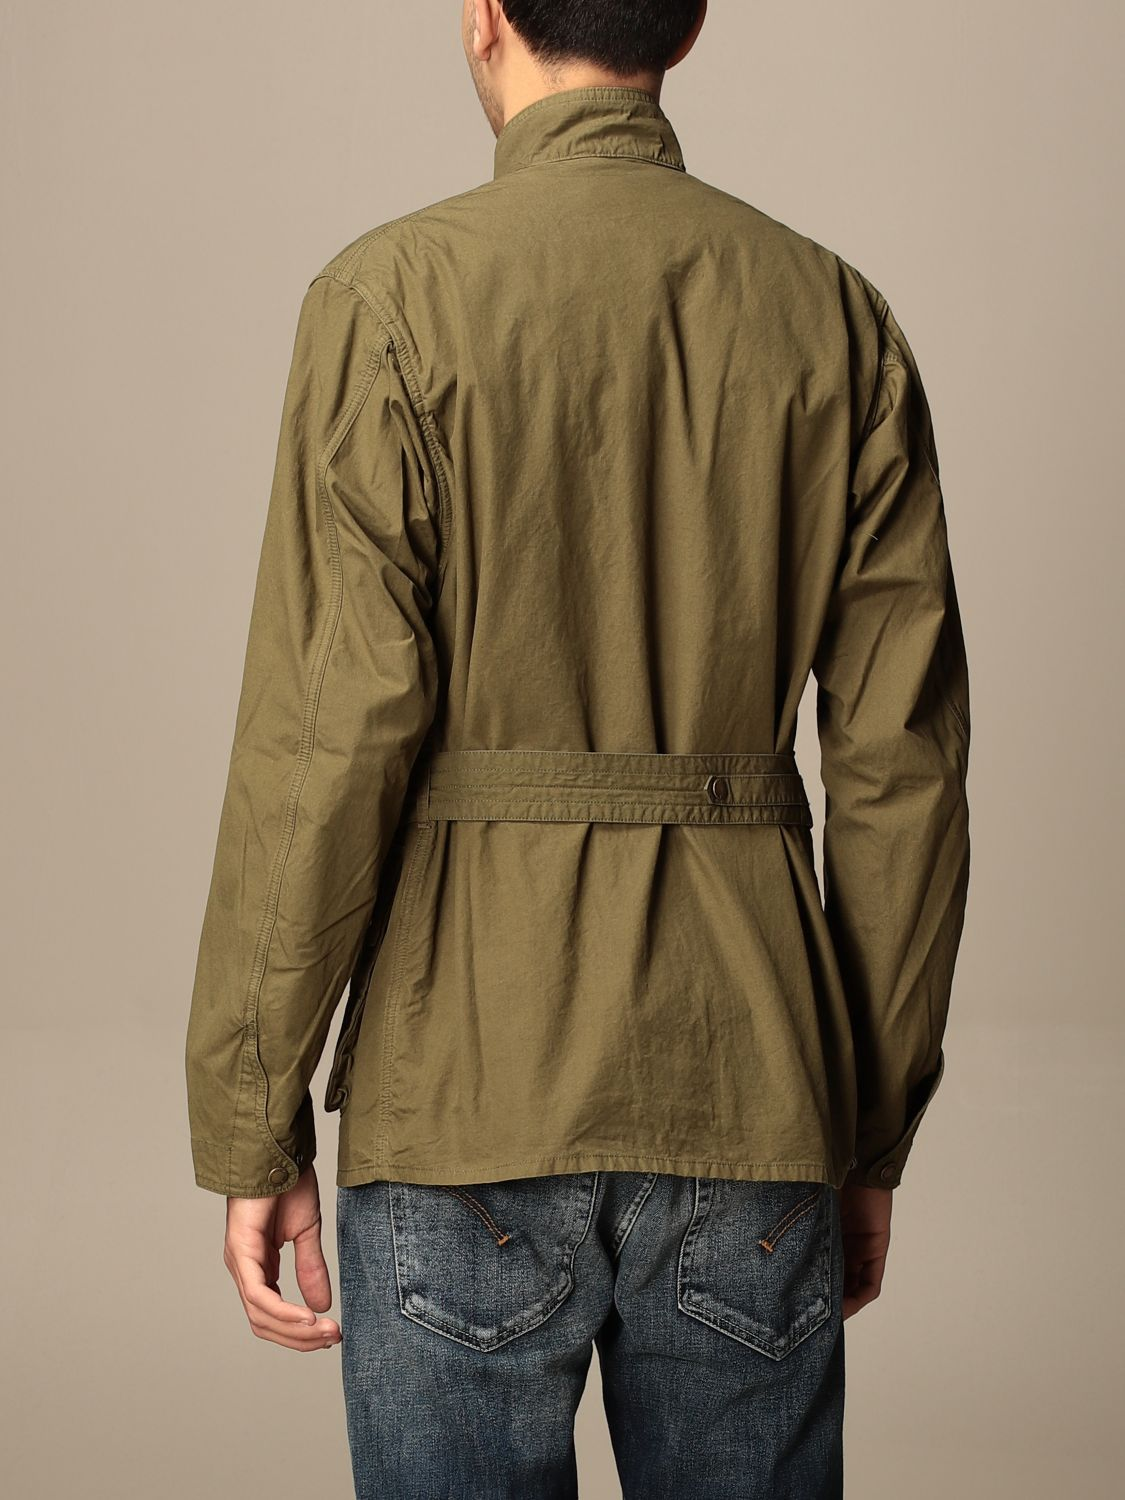 Giacca Barbour: Giacca Barbour in canvas militare 2